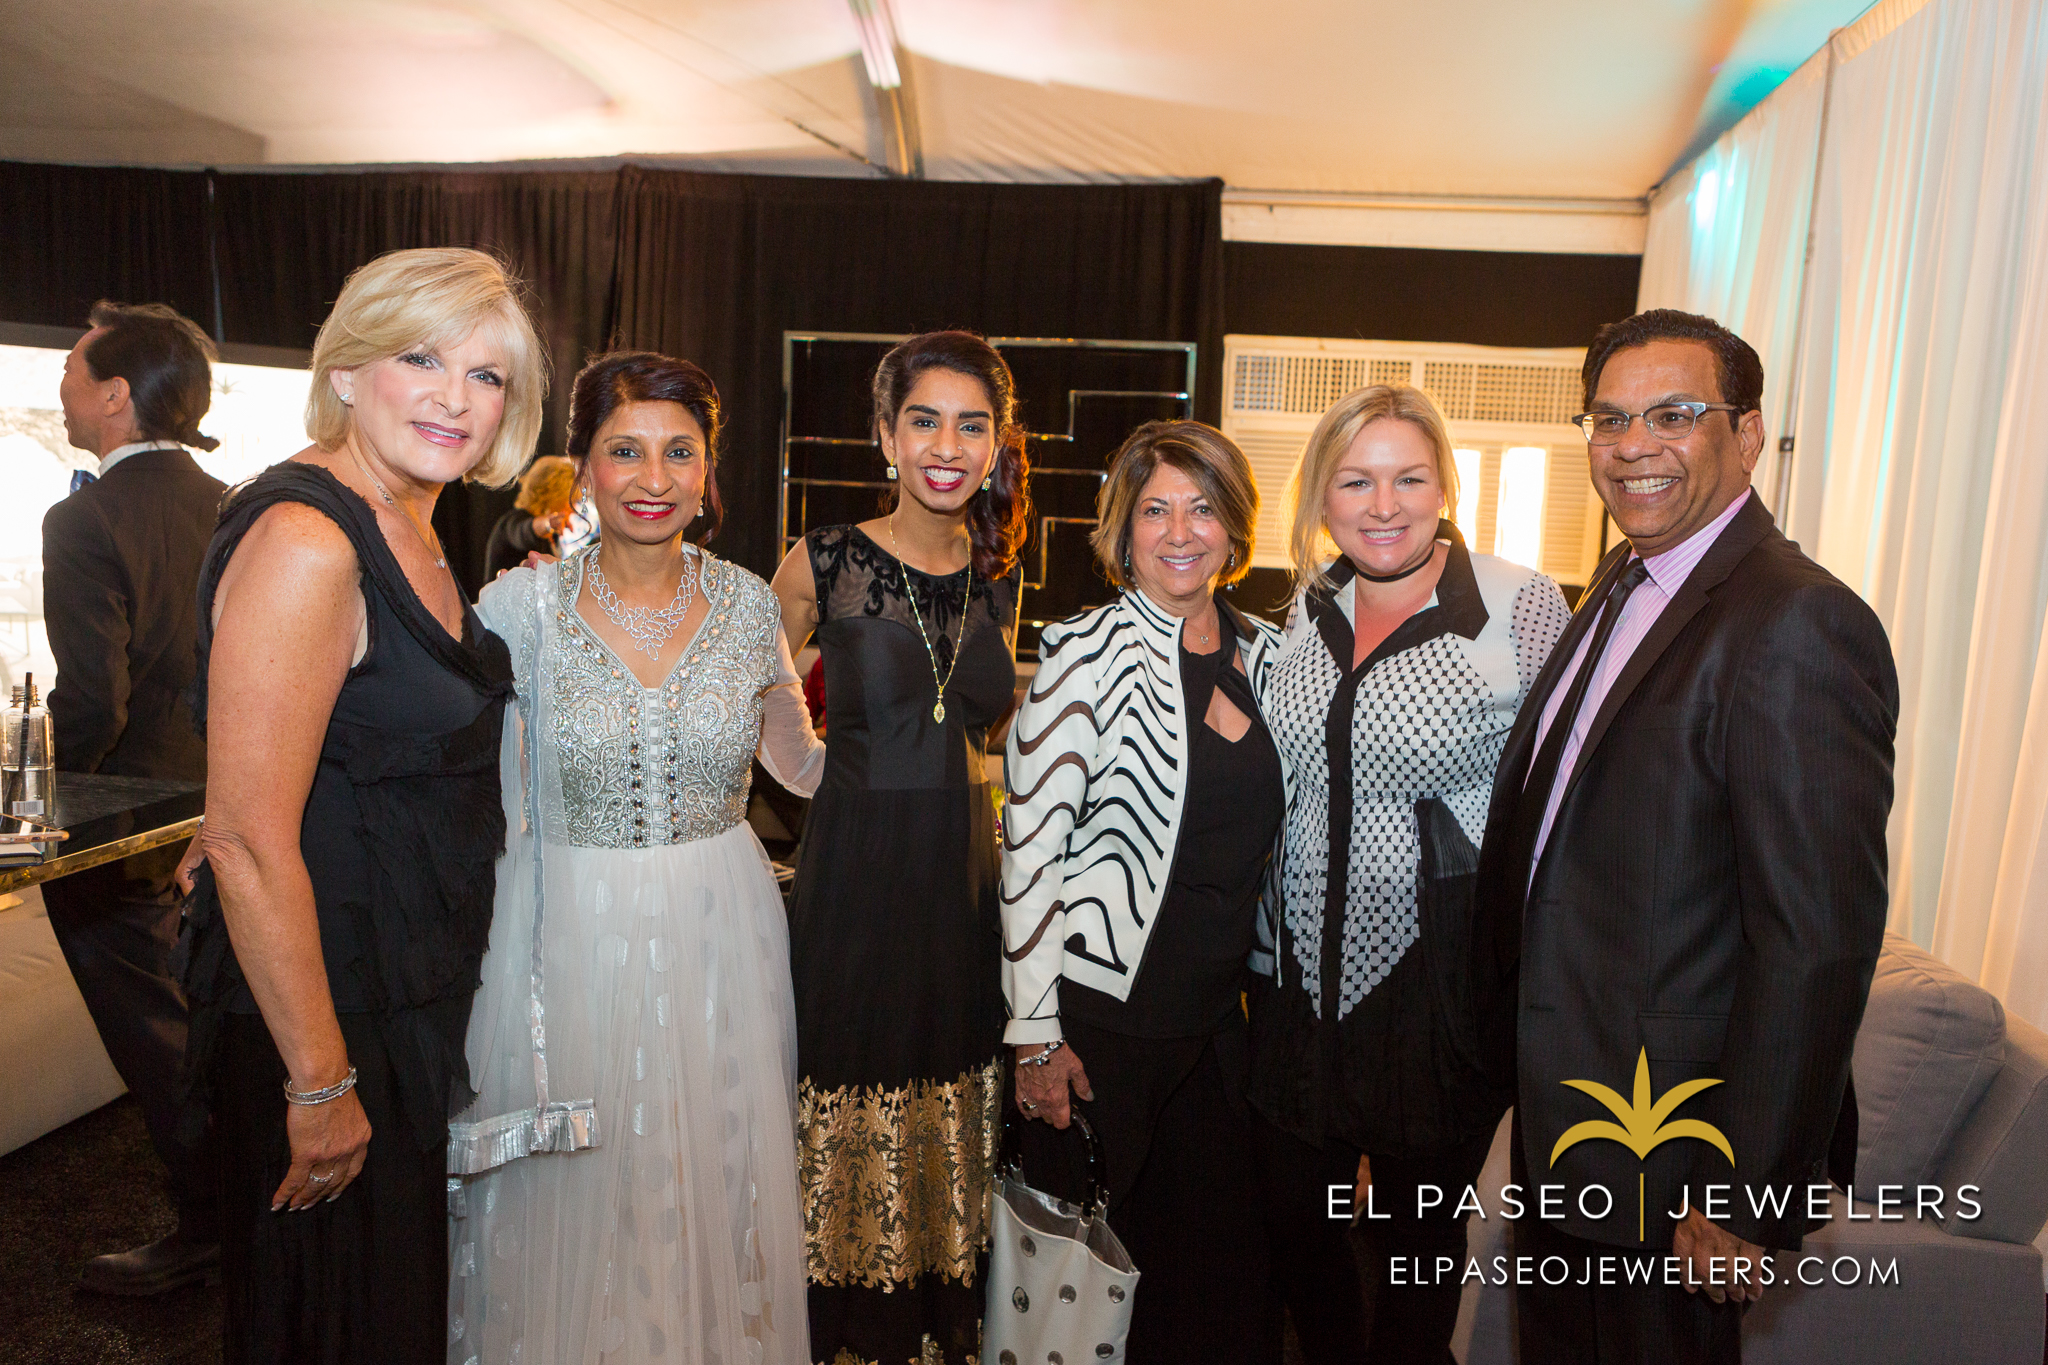 El Paseo Jewelers Fashion Week El Paseo – Day 8 – March 25th, 2017